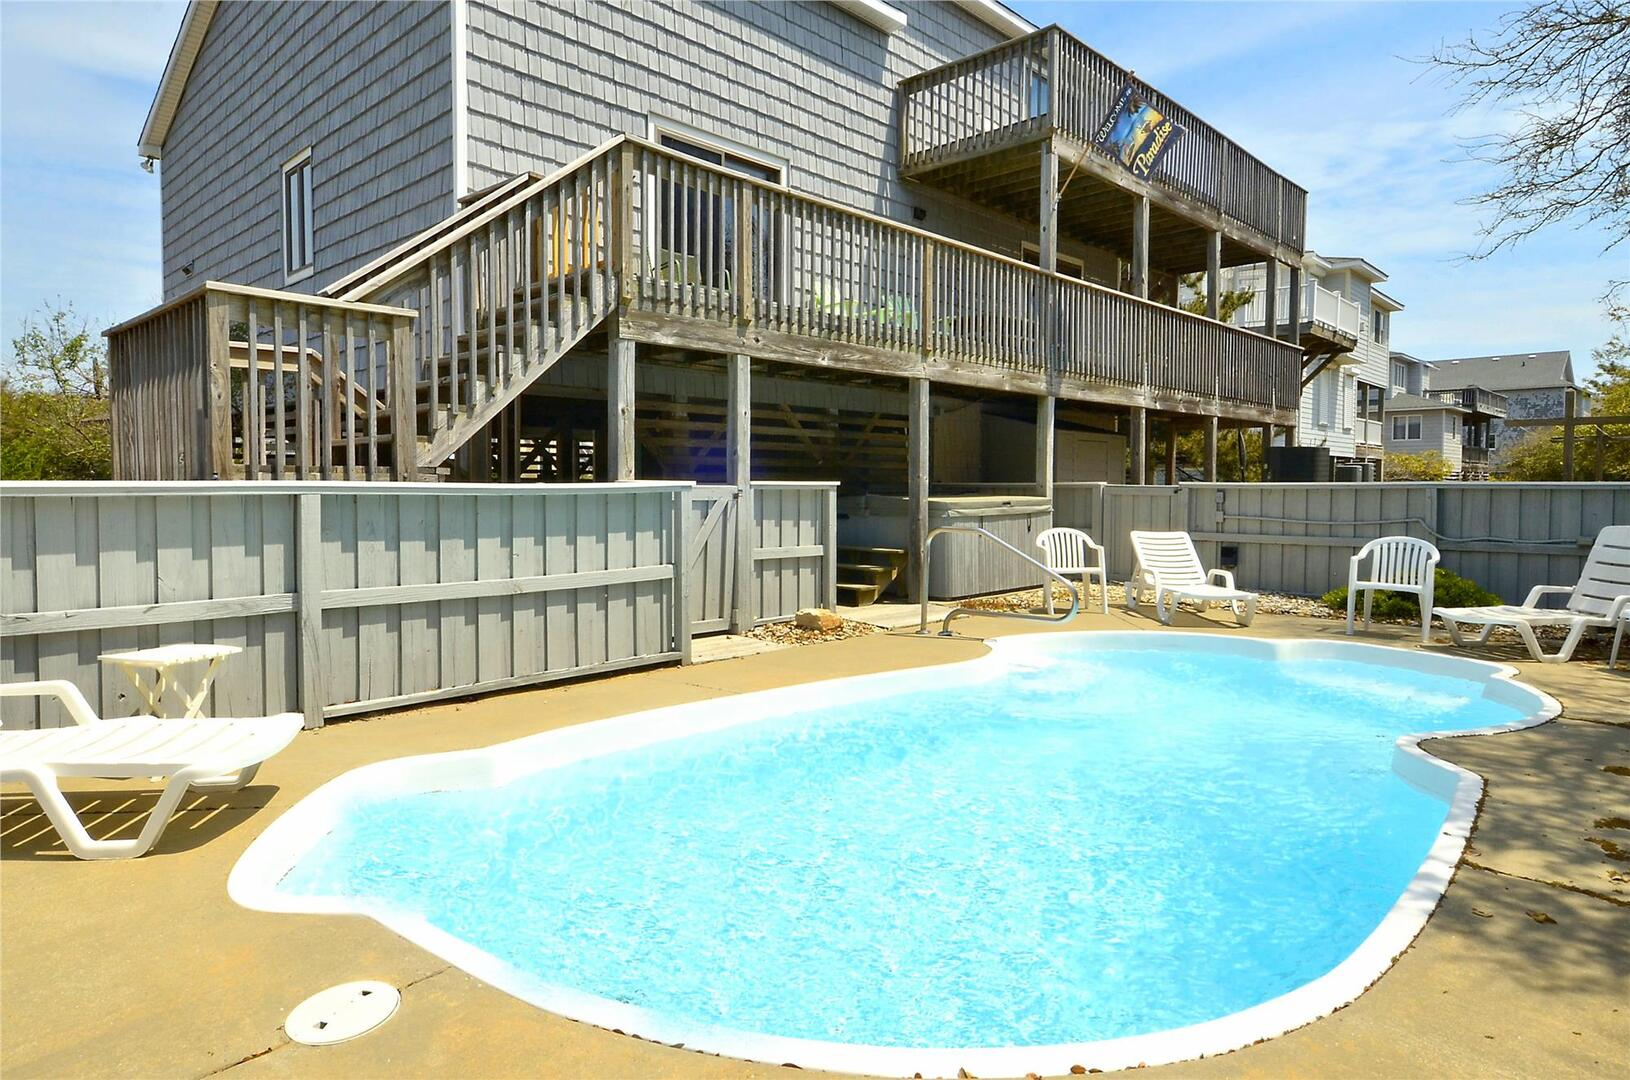 Pool Level,Pool Deck,